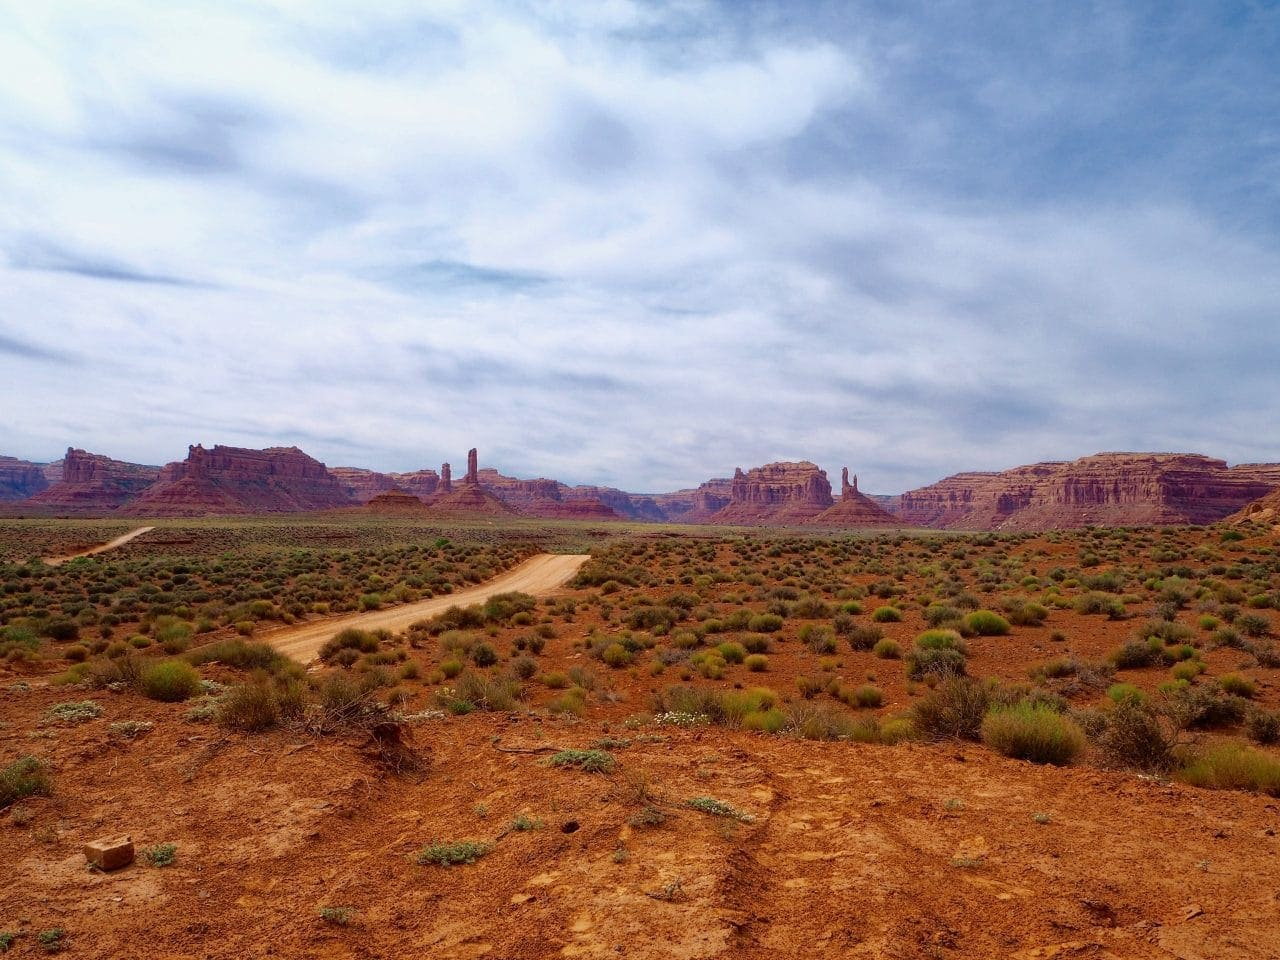 Valley of the Gods in Utah